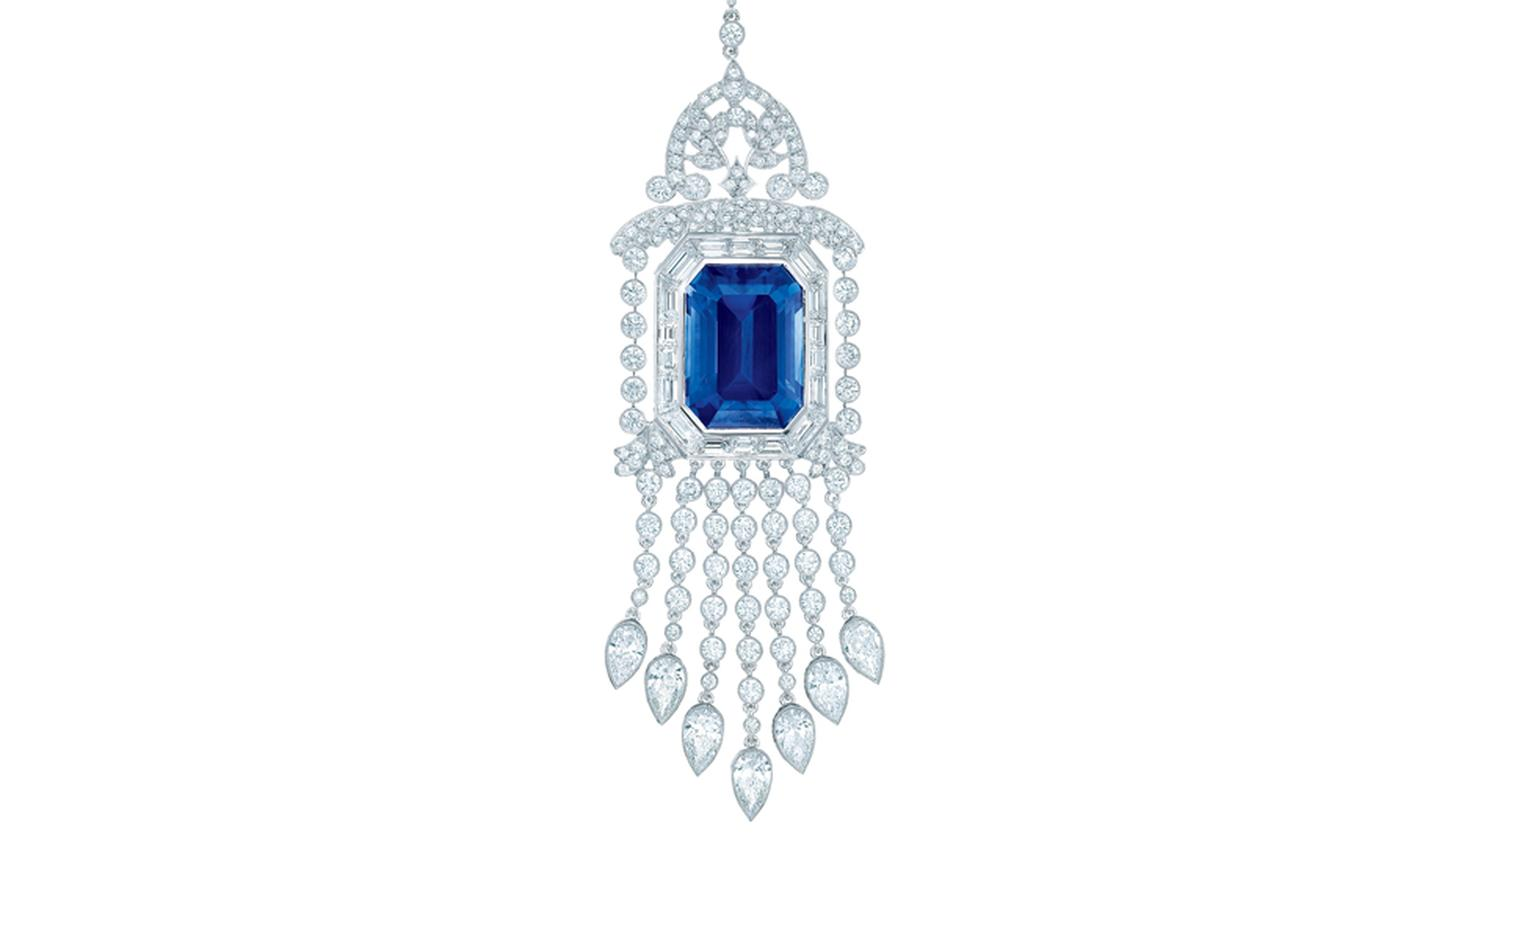 TIFFANY, Diamond and Sapphire Pendant. Price from $280,000